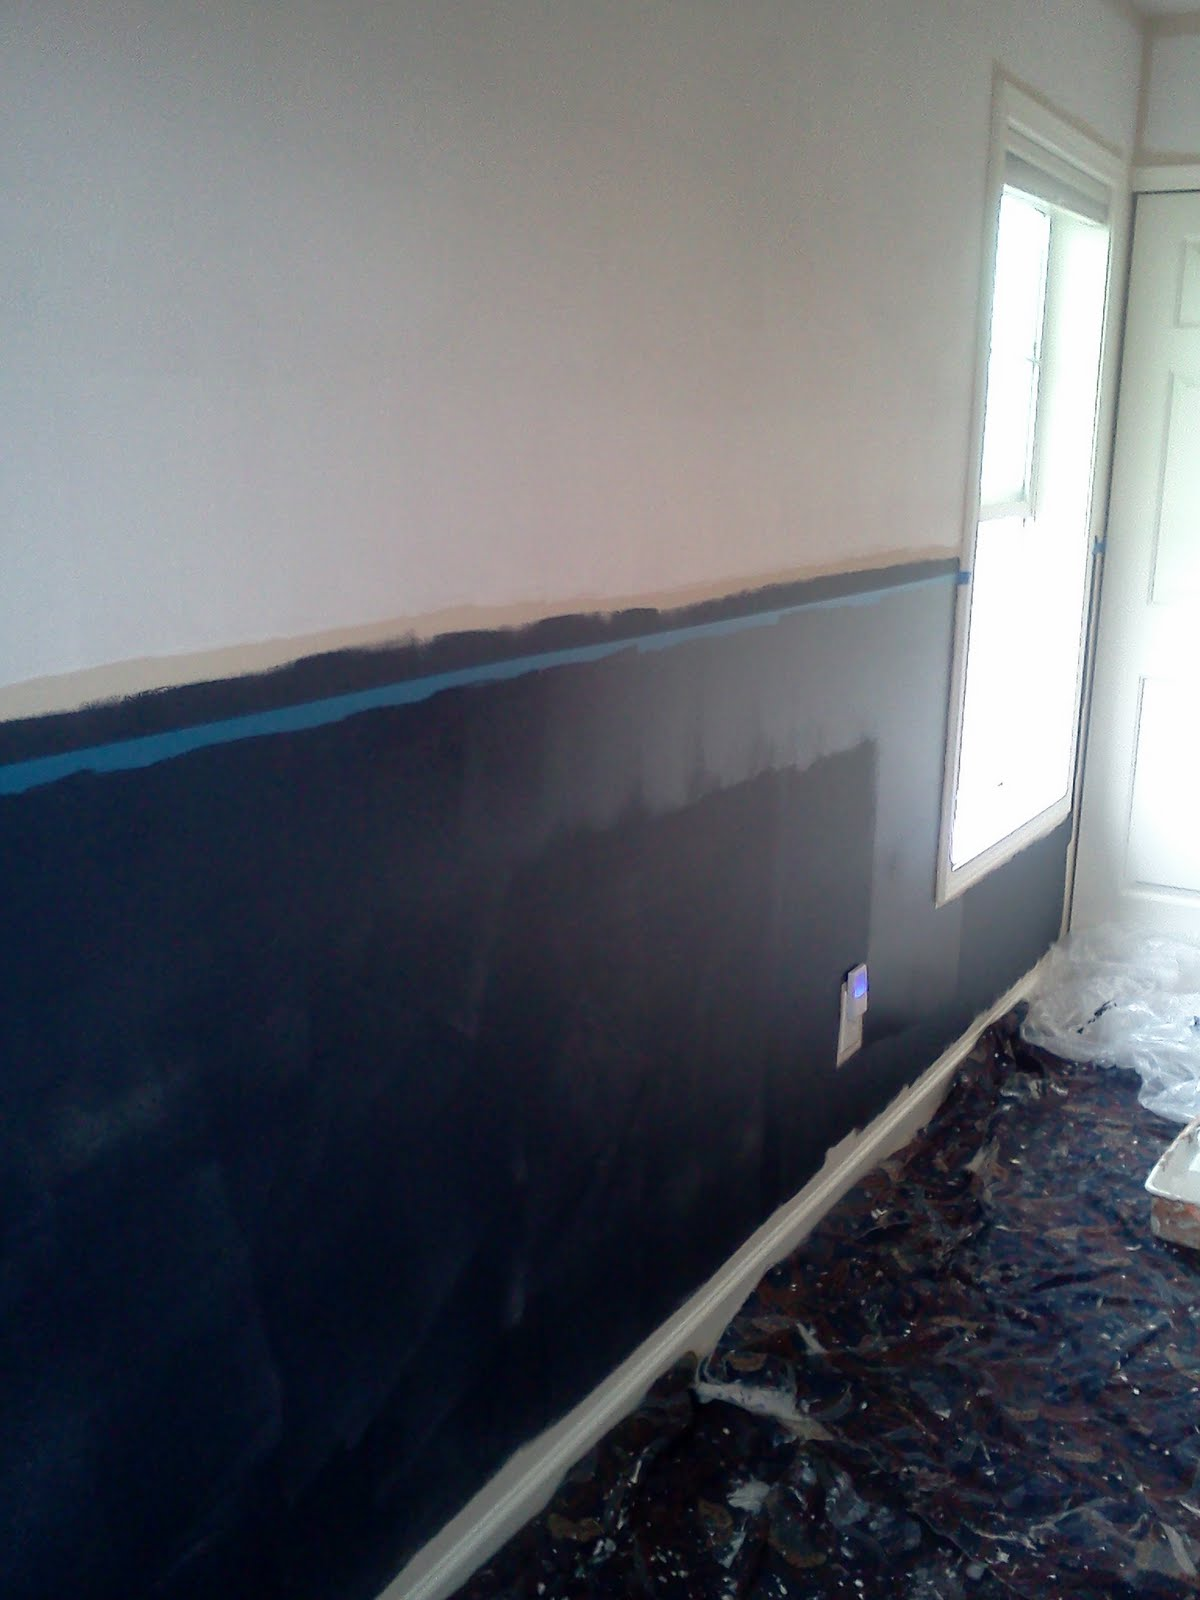 As always when working with navy blue and darker based colors you need many coats of paint to achieve the actual color that you're looking for.